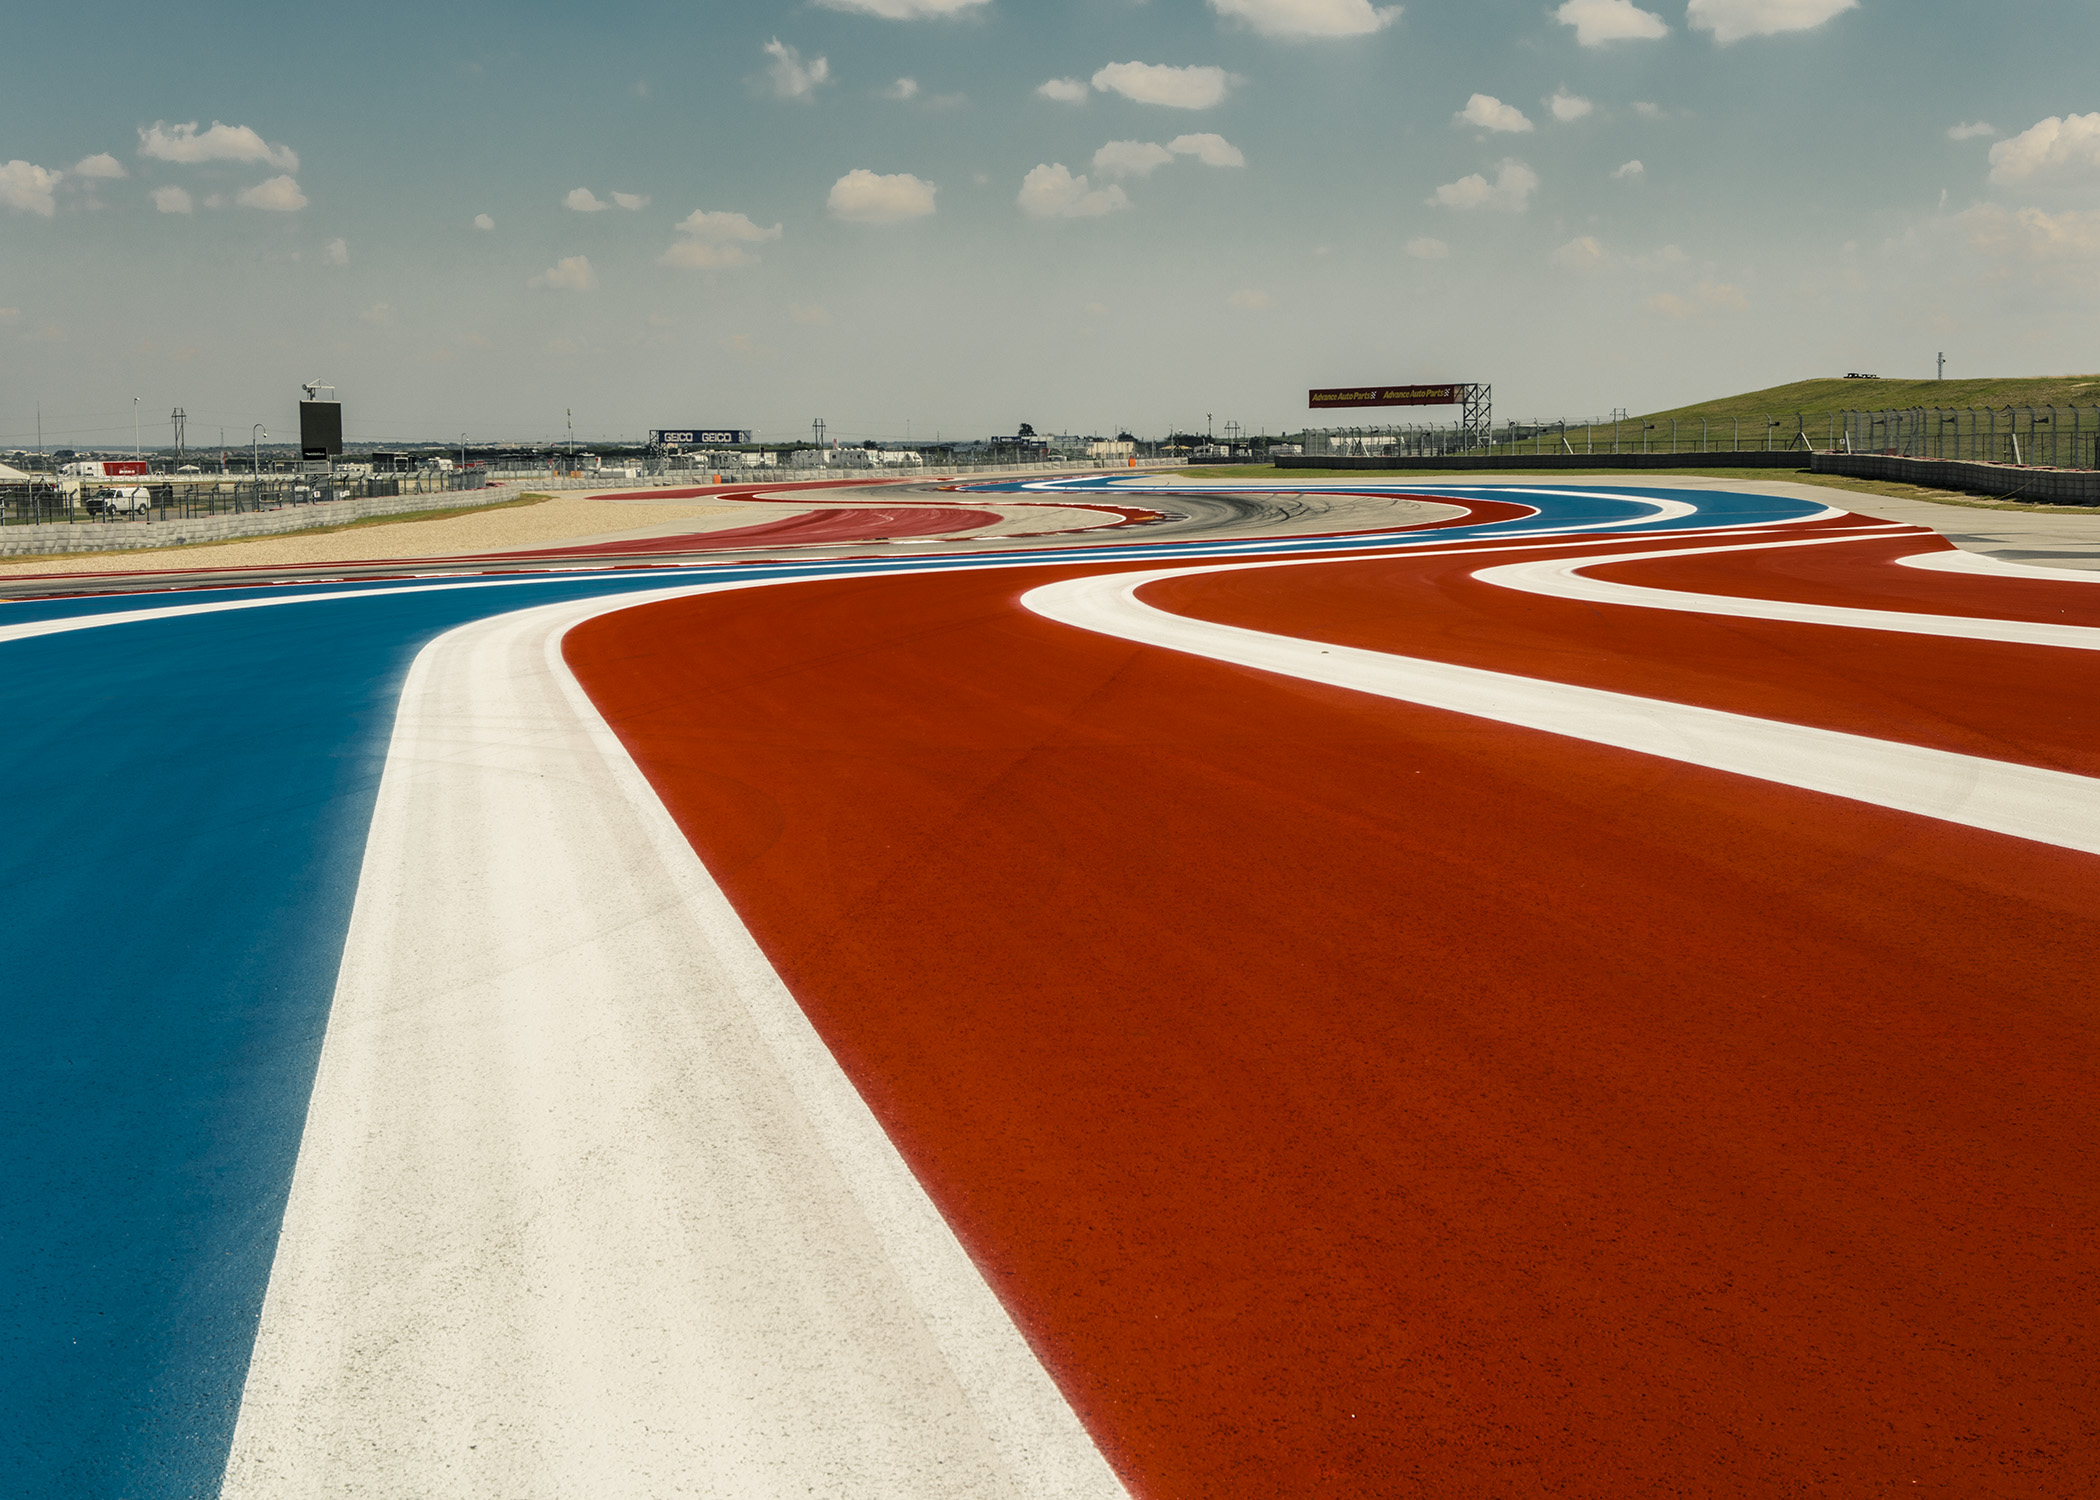 Fredrik Broden | Circuit of the Americas